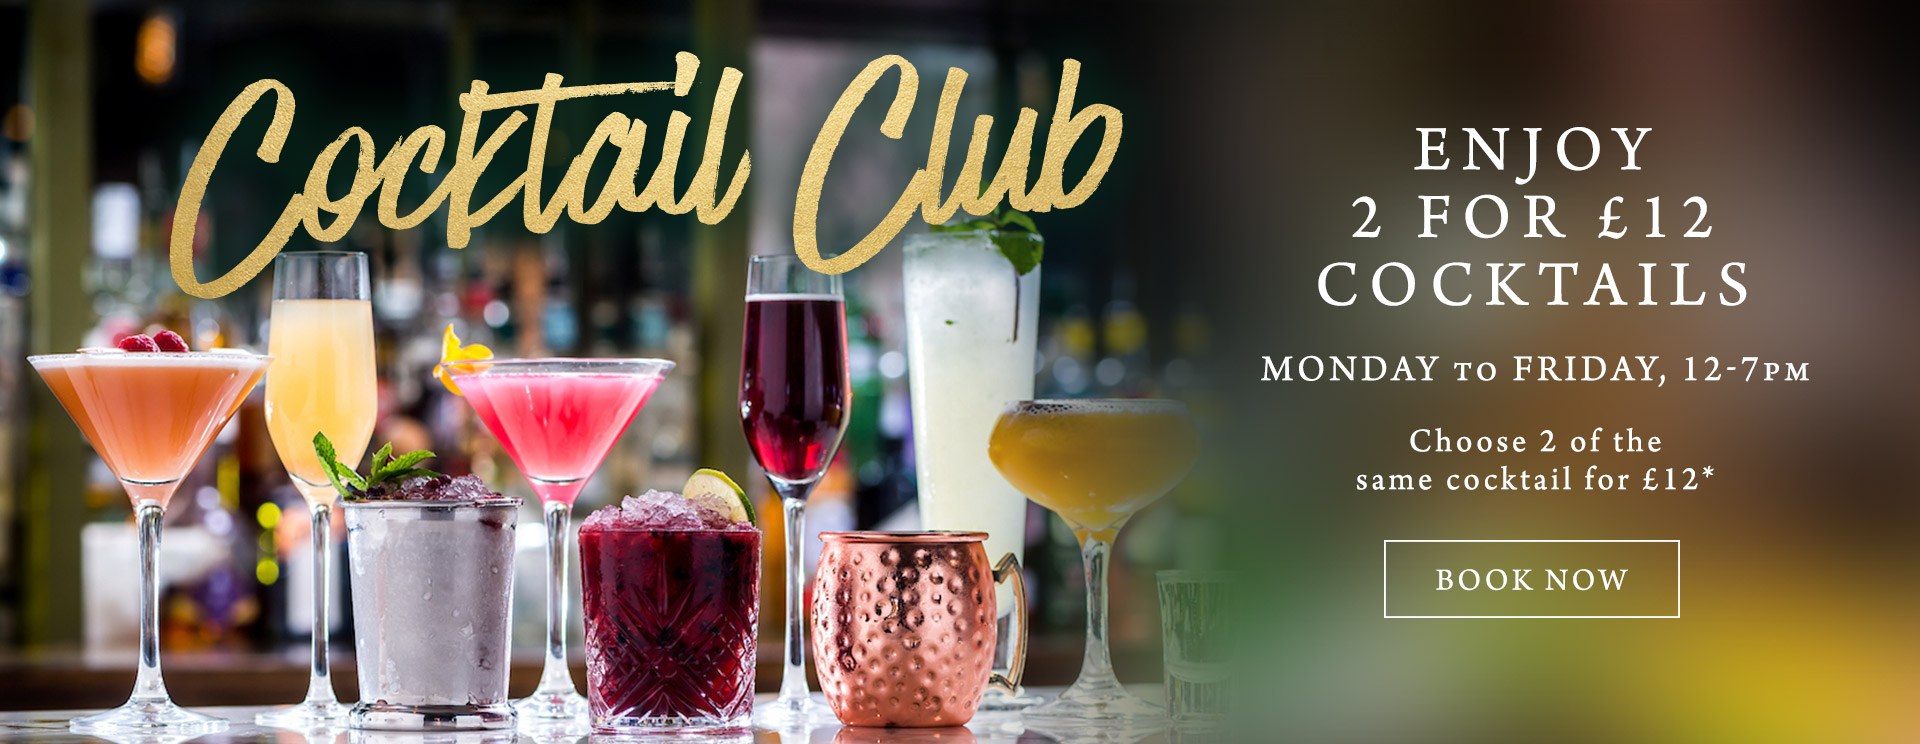 2 for £12 cocktails at The Marchmont Arms